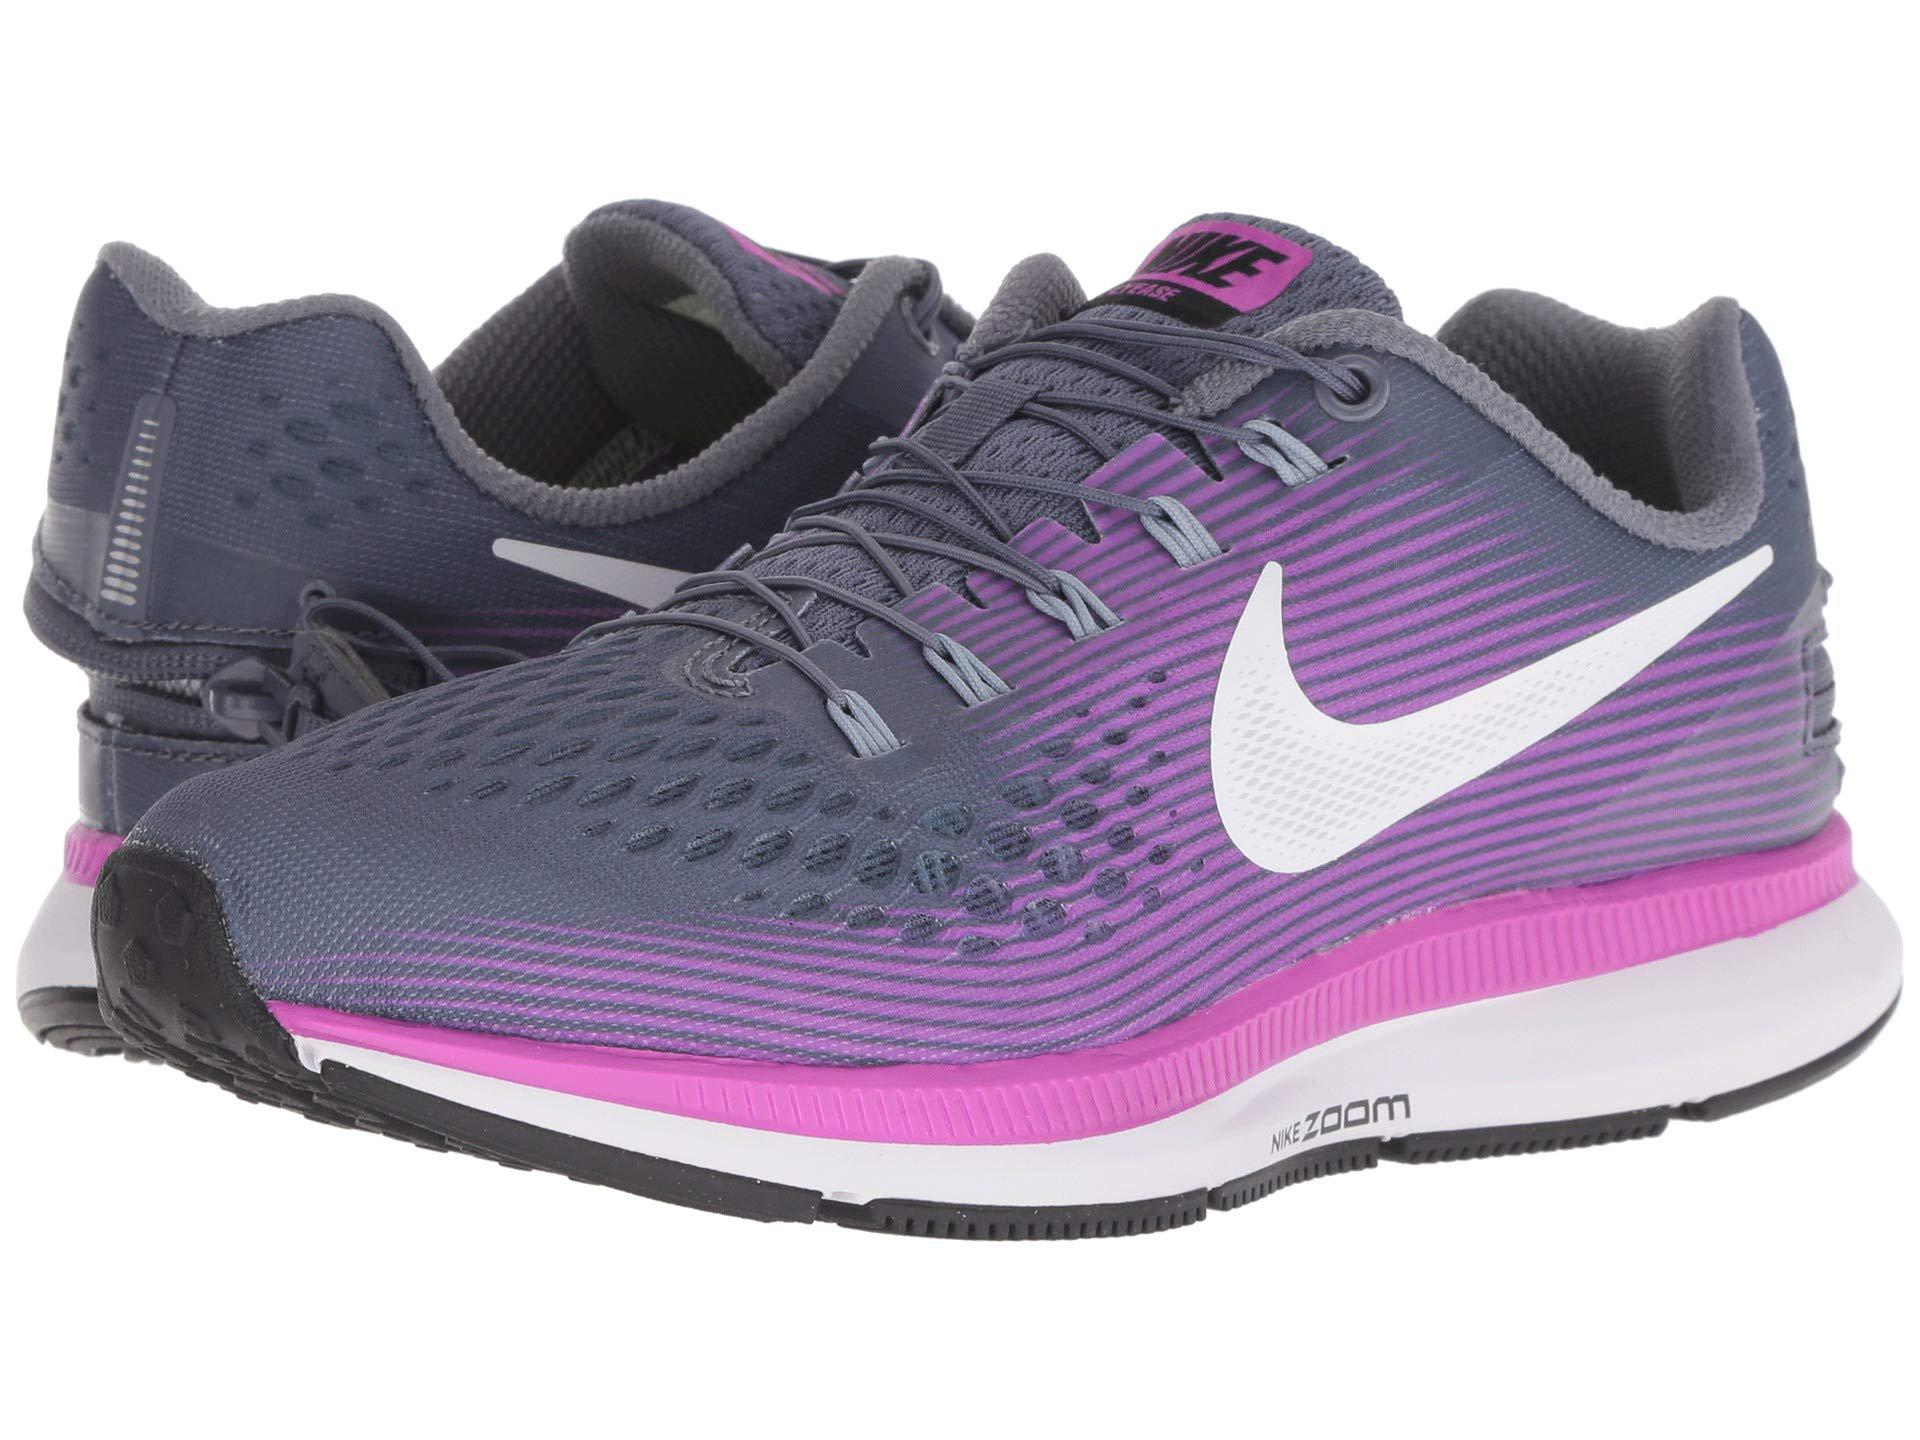 new arrivals c8f0b e77ee Women s Purple Air Zoom Pegasus 34 Flyease Sale Lot of Exclusive Styles Nike  ...